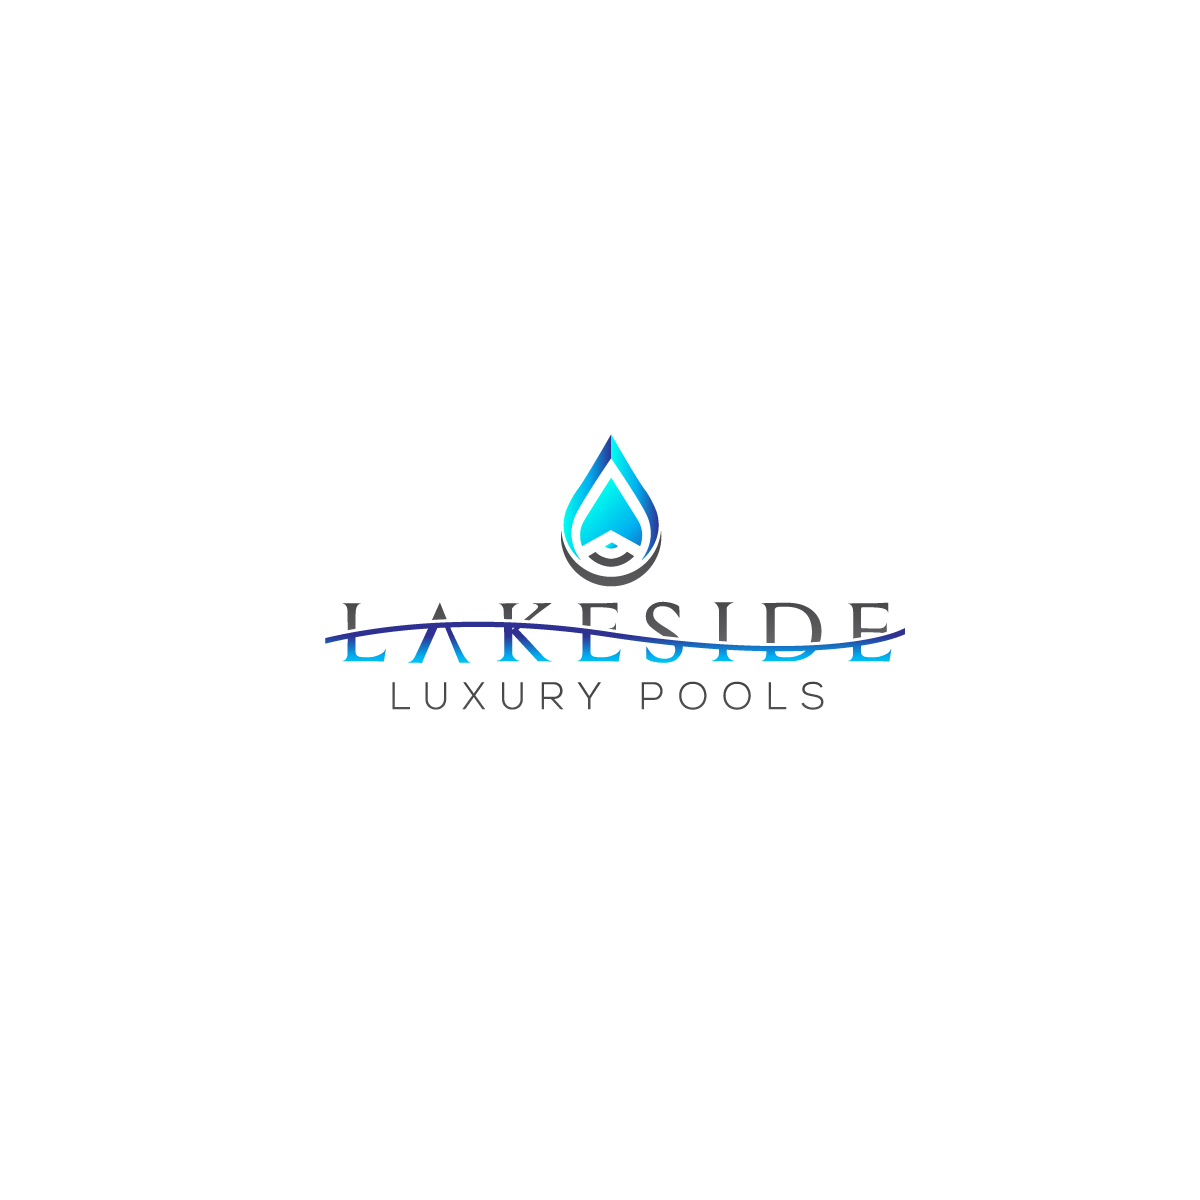 We need a high end elegant design for a luxury swimming pool building company